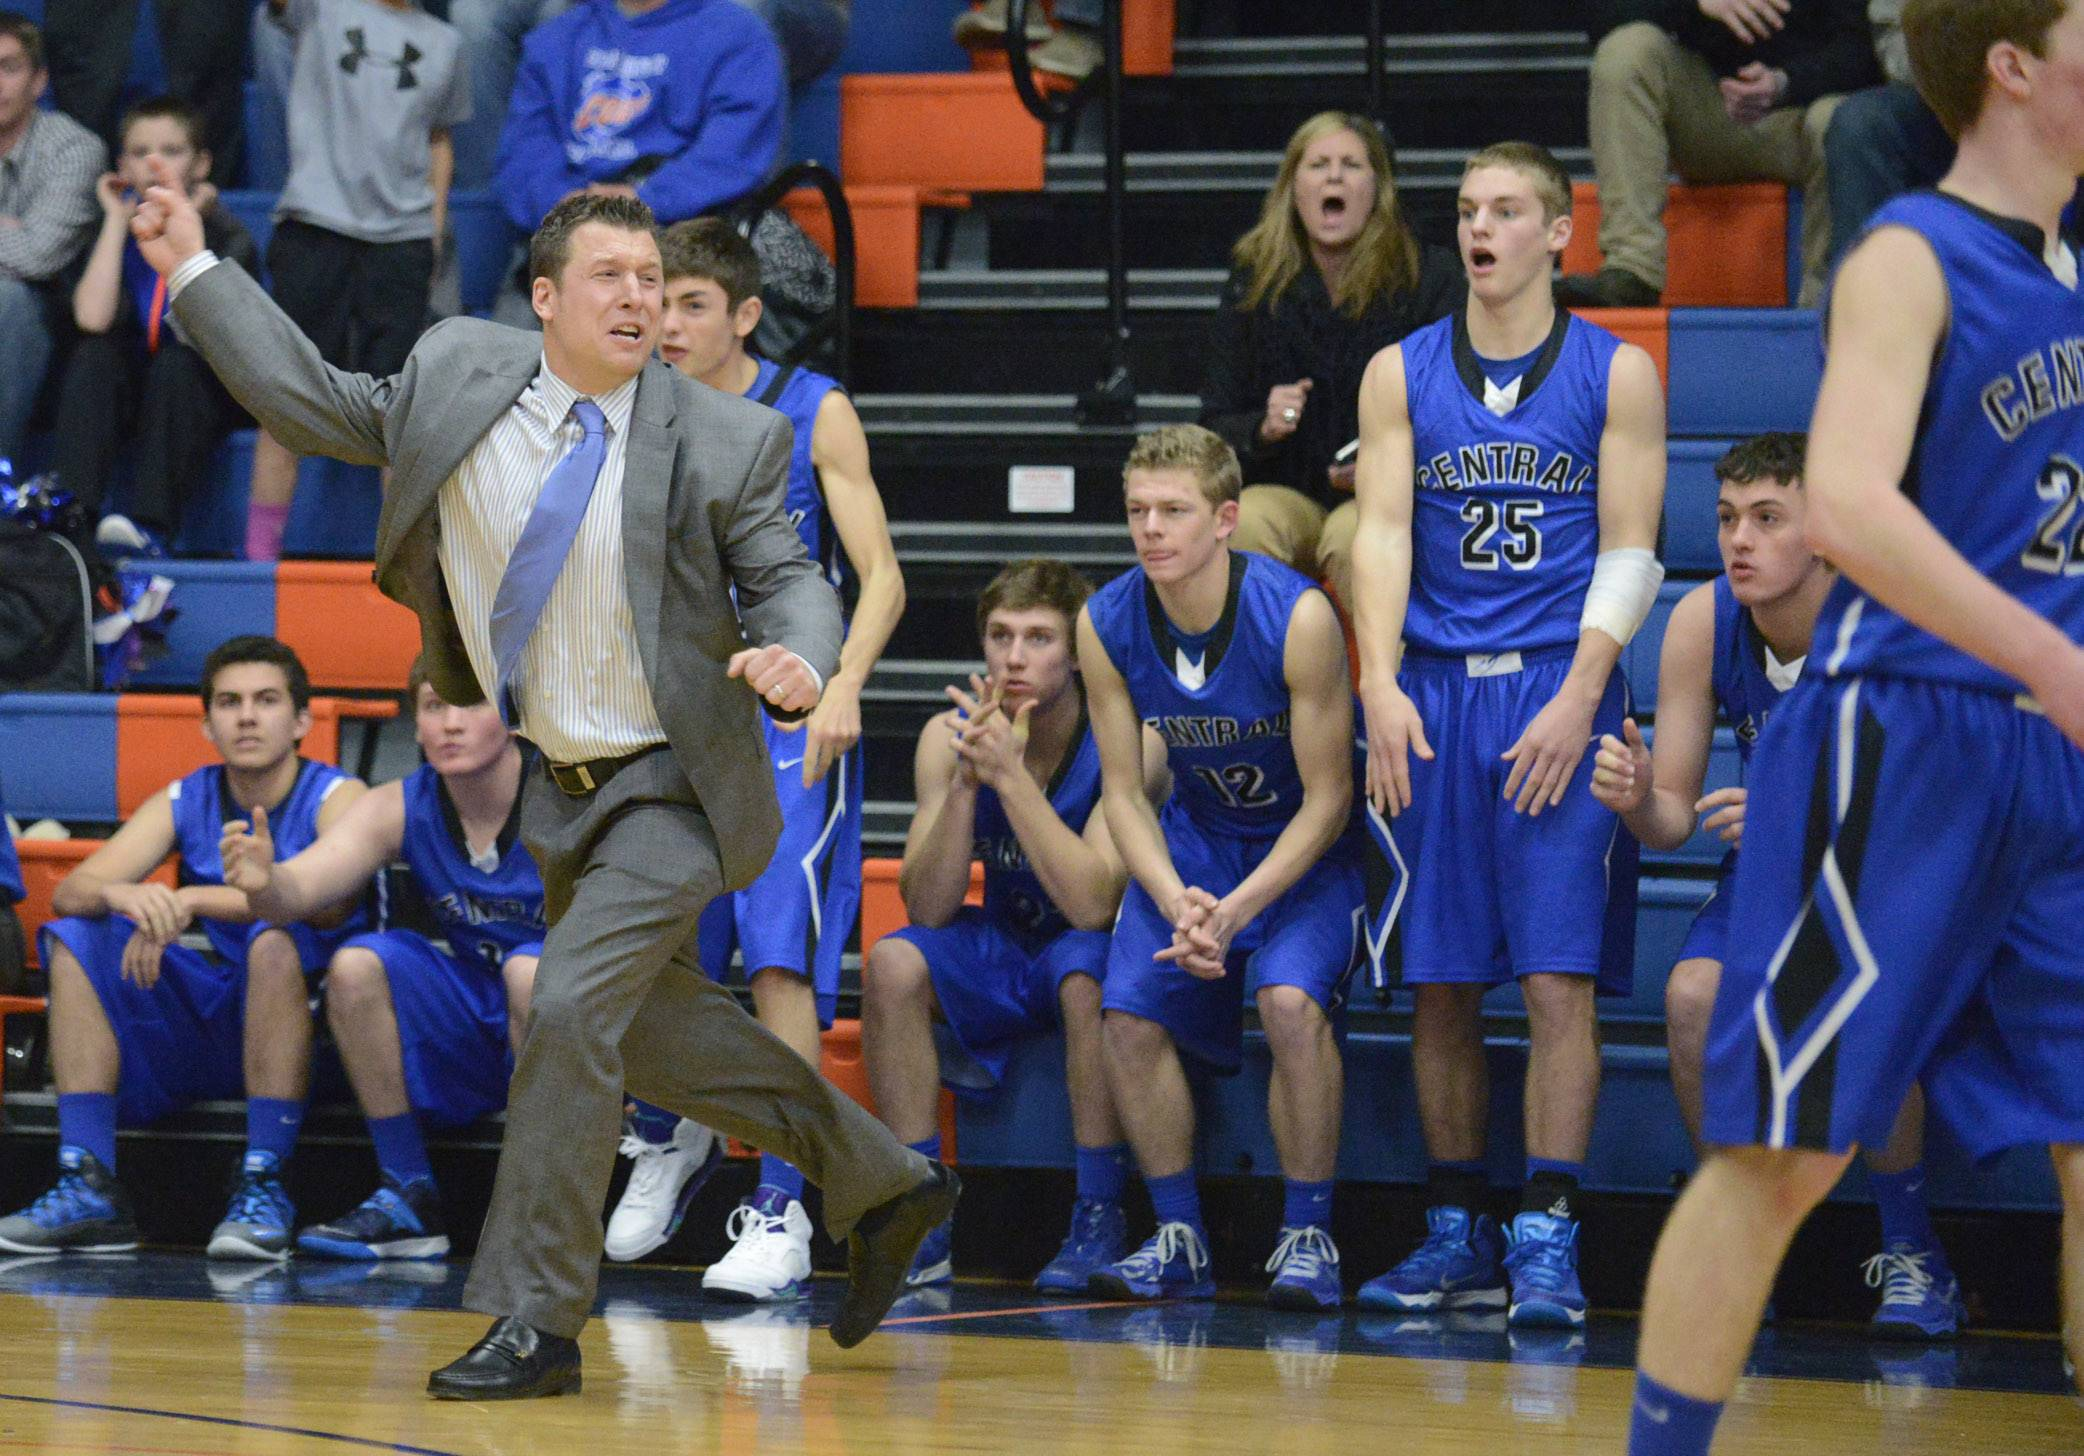 Burlington Central's coach Brett Porto reacts as Wheaton Academy wins.